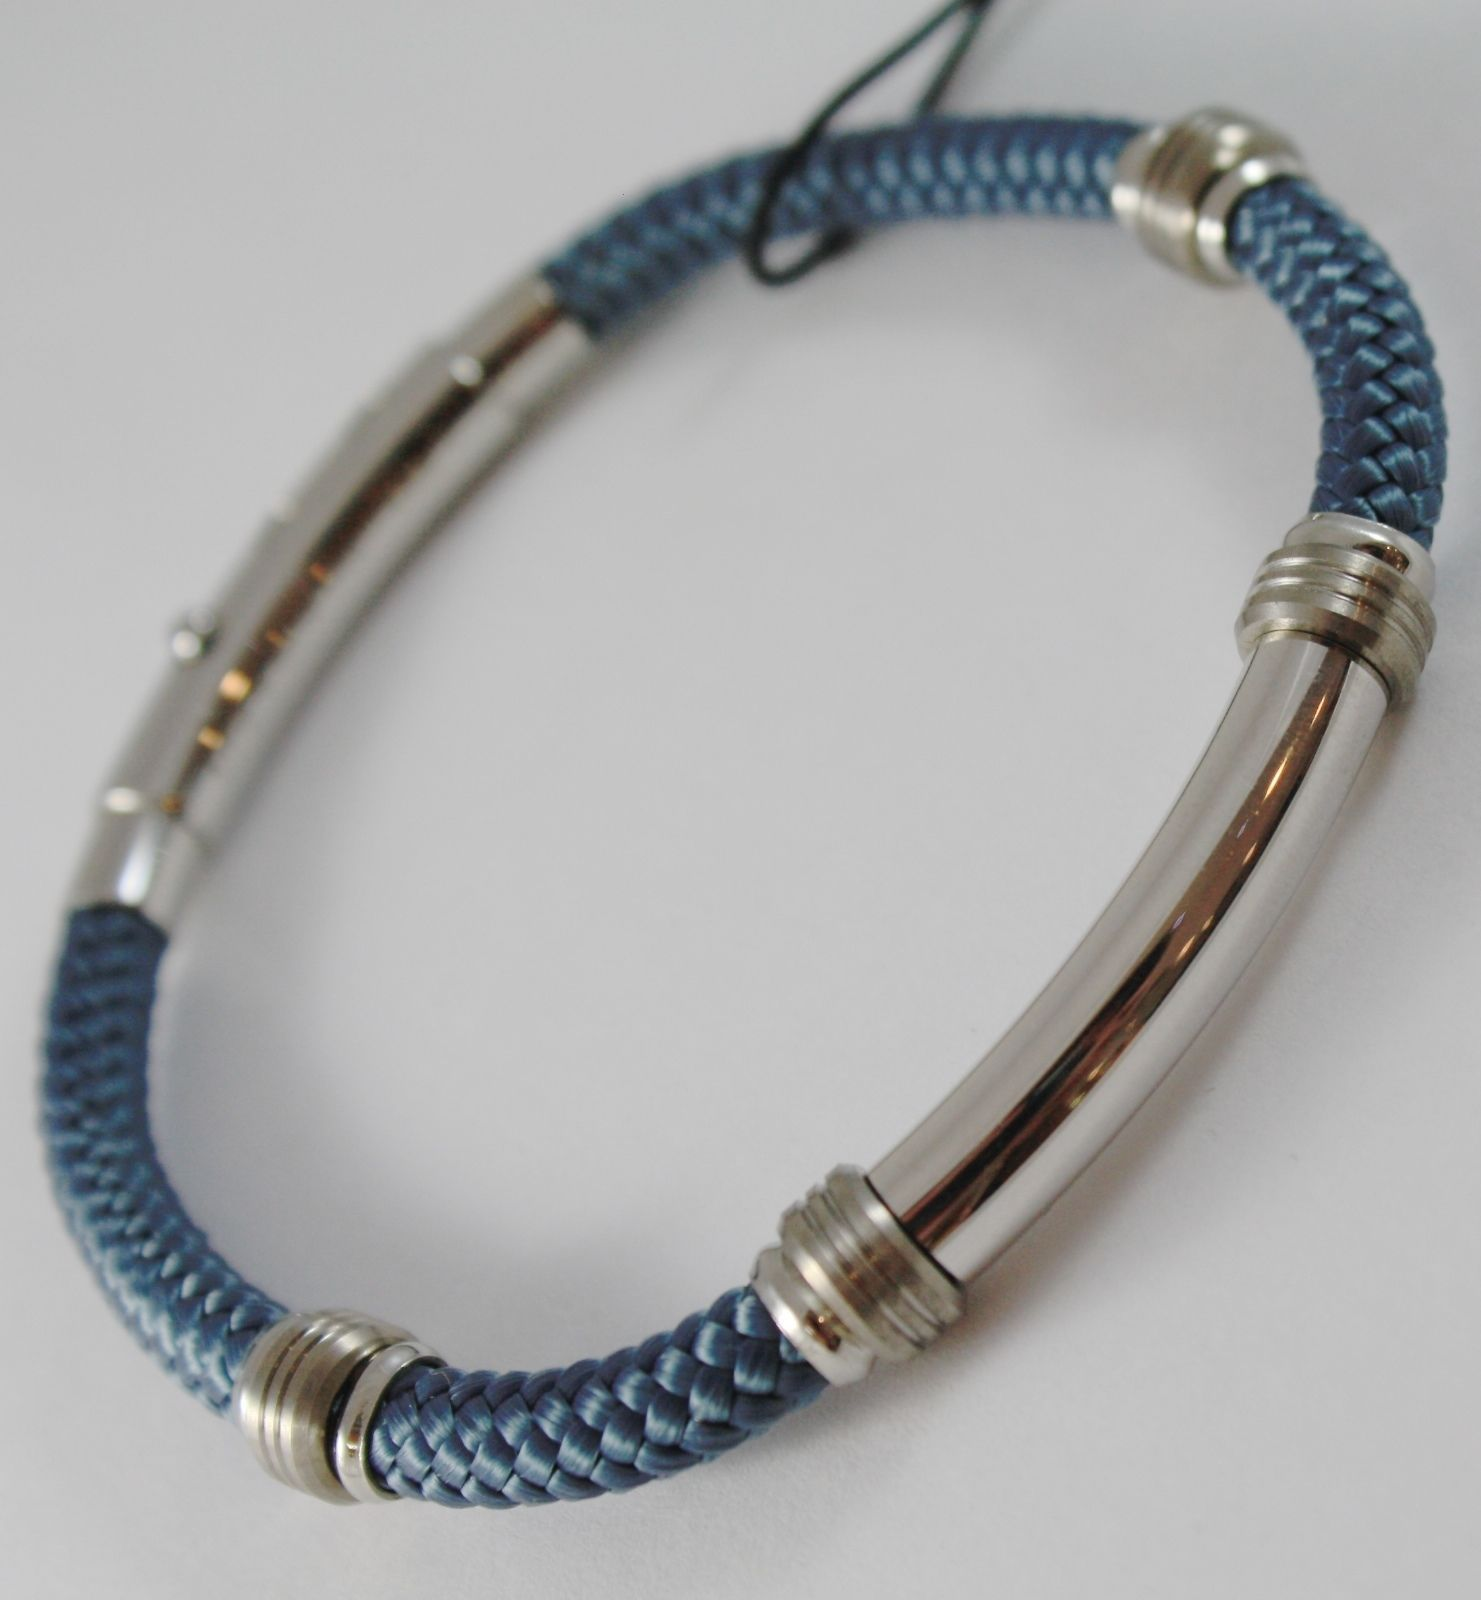 925 SILVER ZANCAN BRACELET BIG NAUTICAL PETROL BLUE ROPE & PLATE MADE IN ITALY